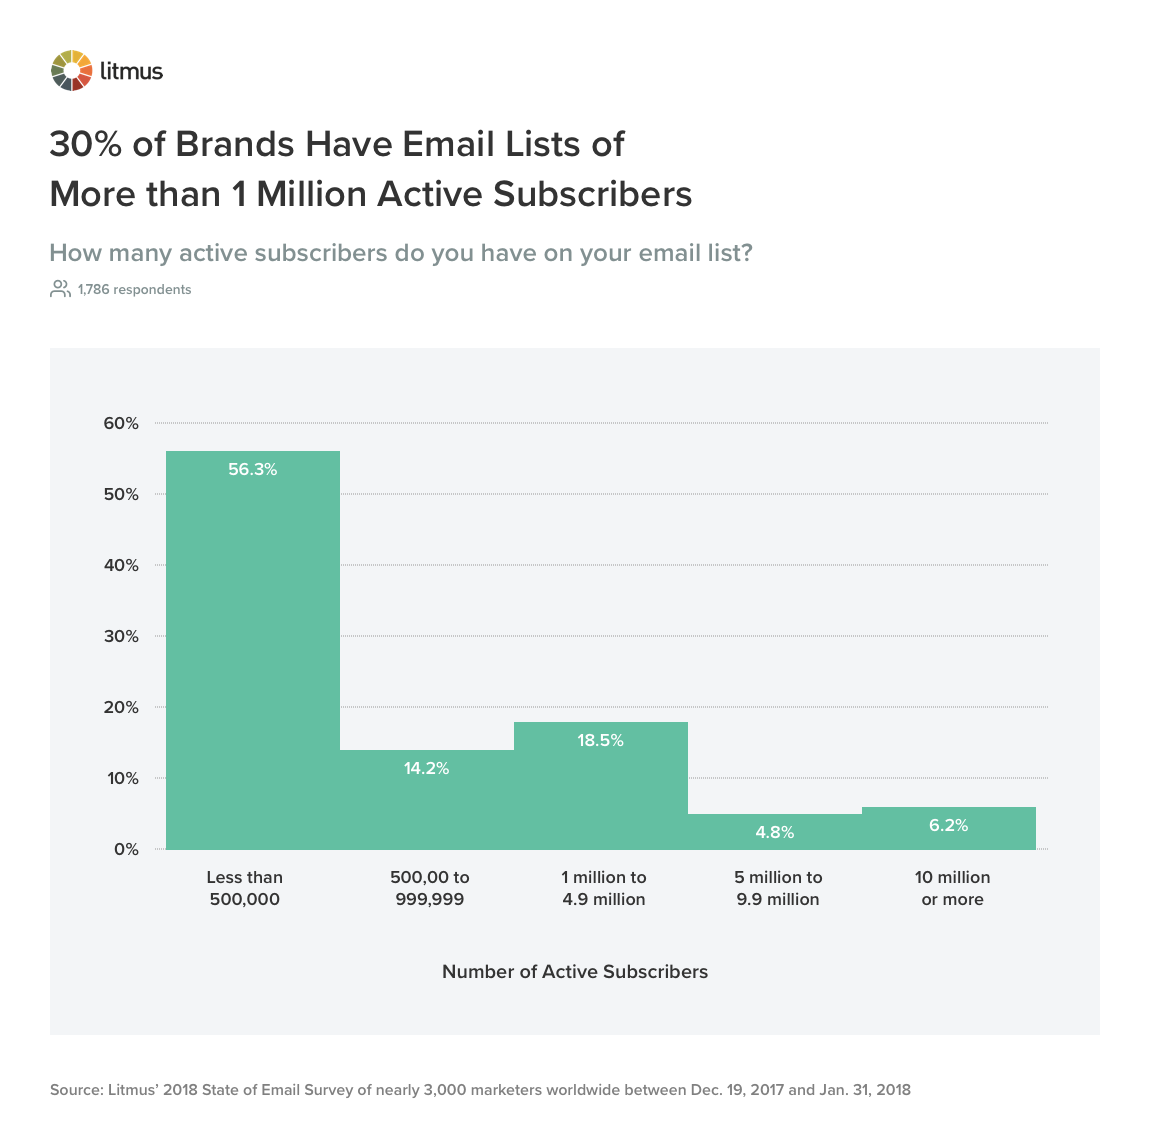 30% of Brands Have Email Lists of More than 1 Million Subscribers